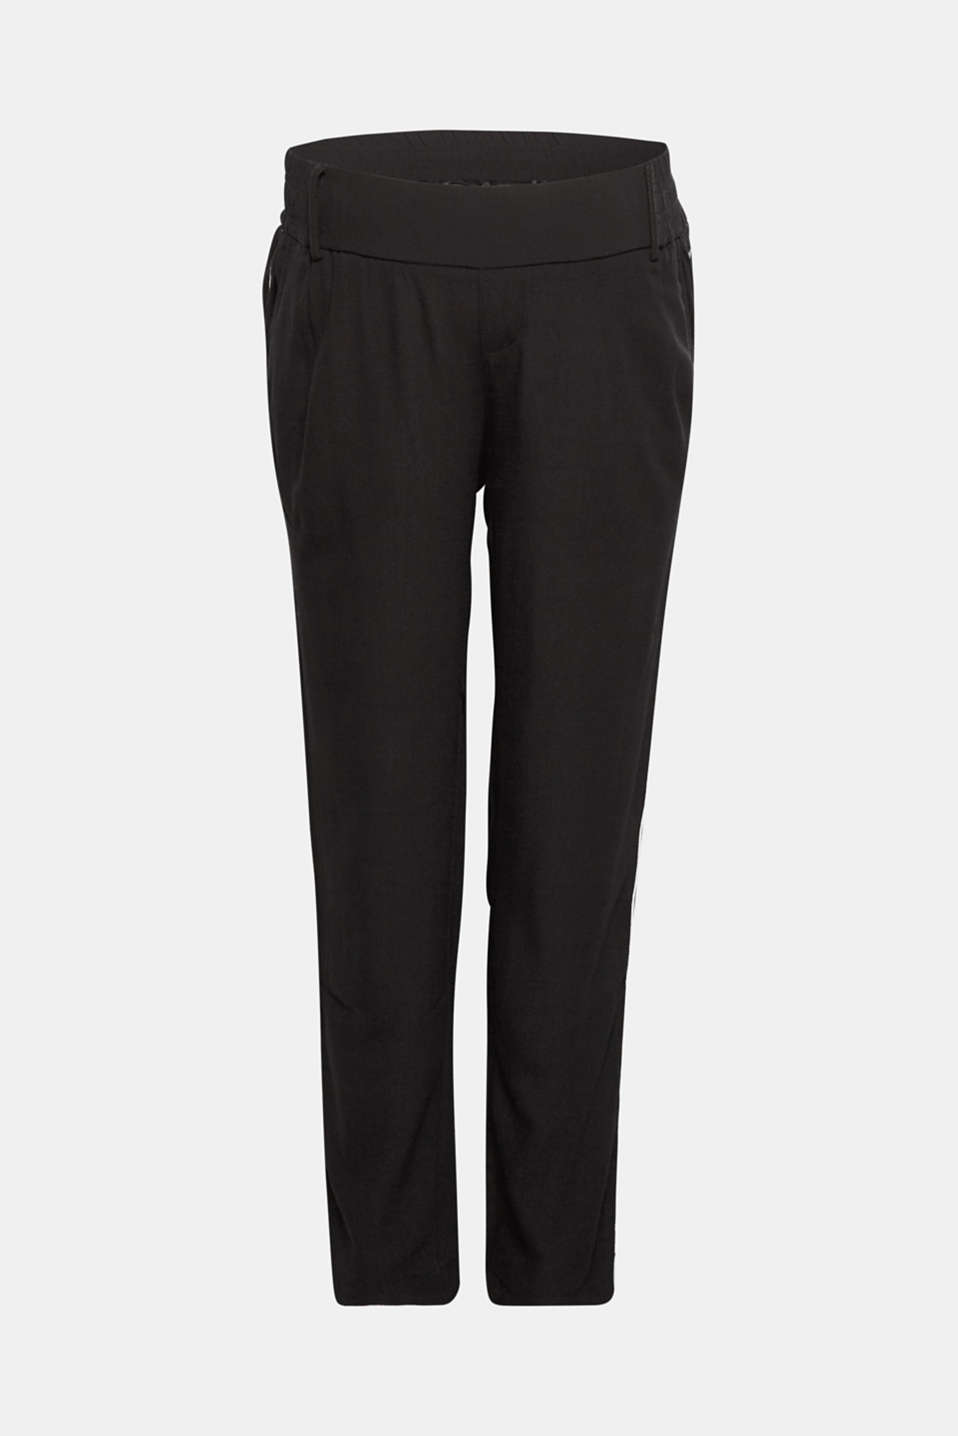 Piped trousers with an under-bump waistband, LCBLACK, detail image number 0